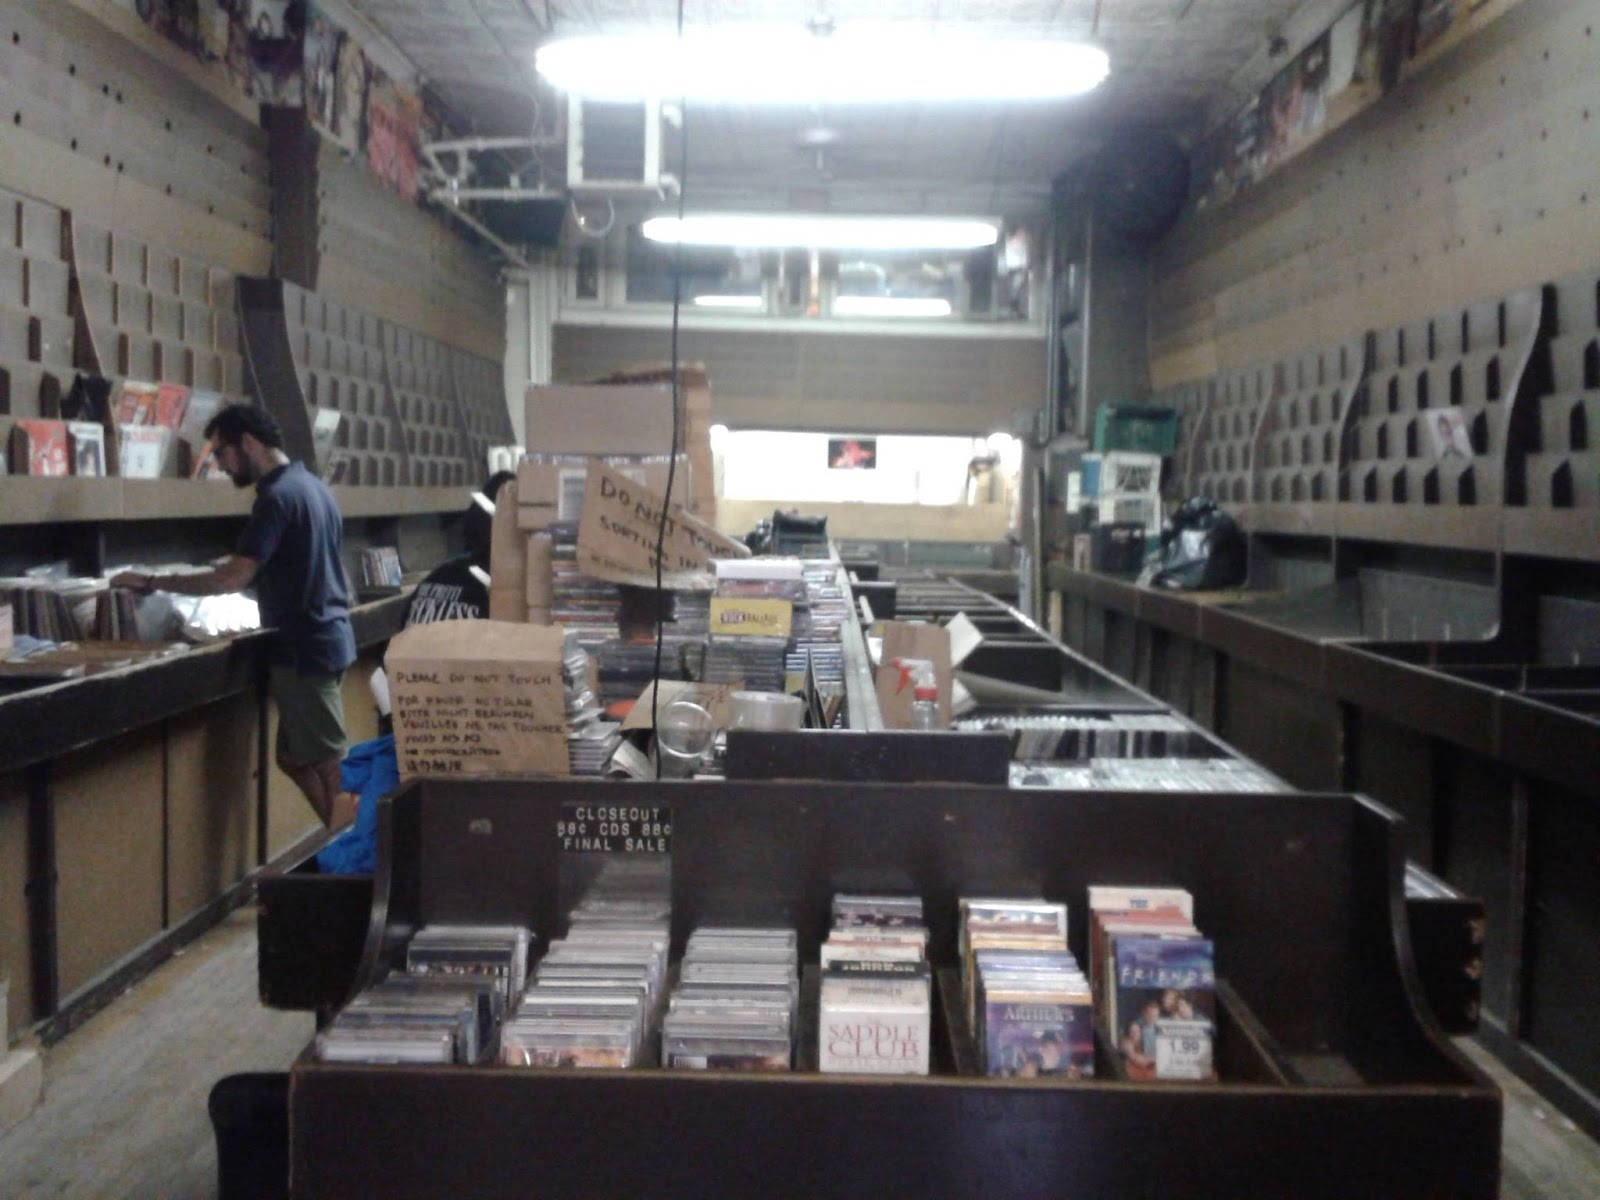 EV Grieve: The last record store on St  Mark's Place is closing